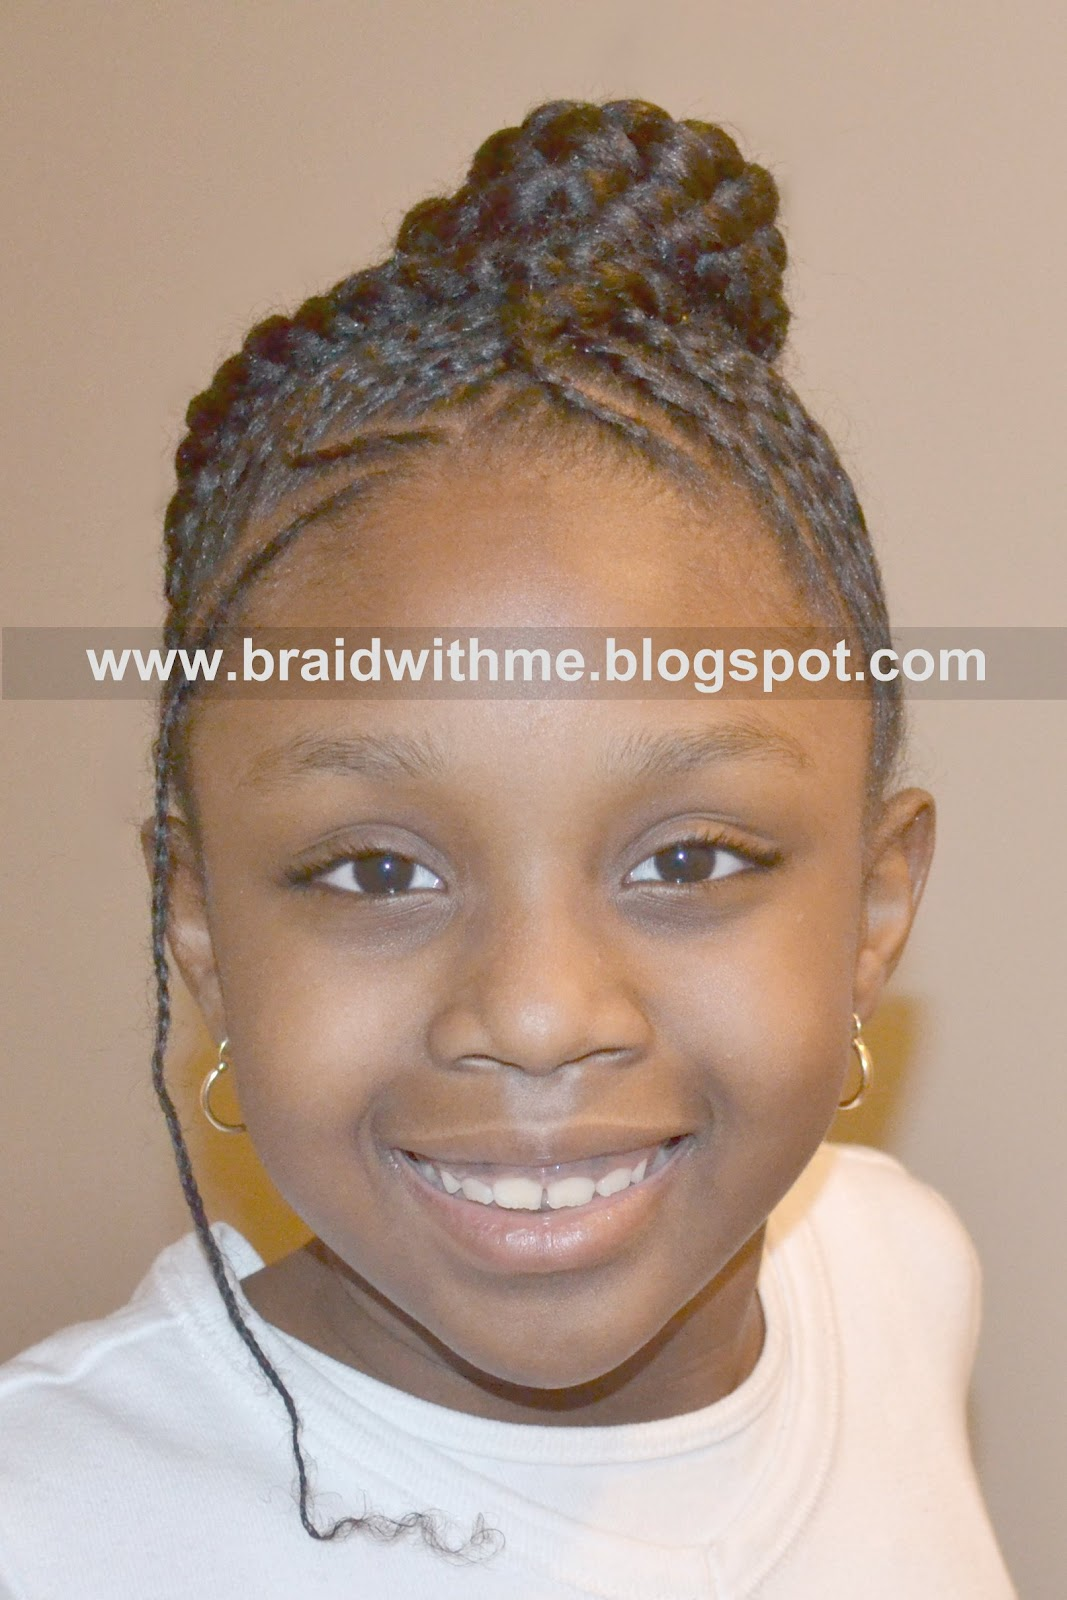 Braided Amp Protected  Protective Hair Style On Childs Natural Hair